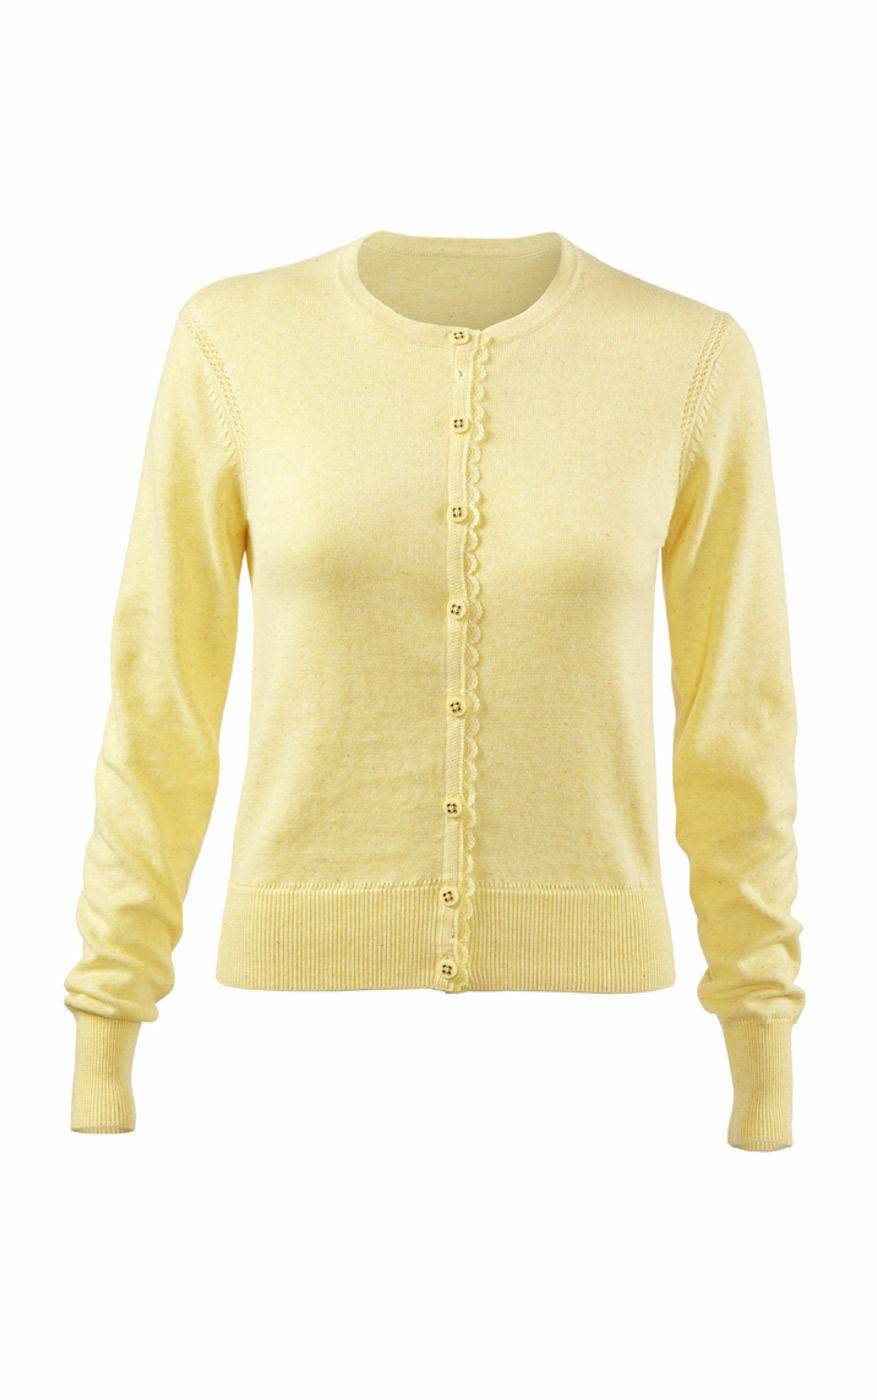 CAbi 100 Cotton Yellow Cardigan Sweater Sizes Style 277 | eBay